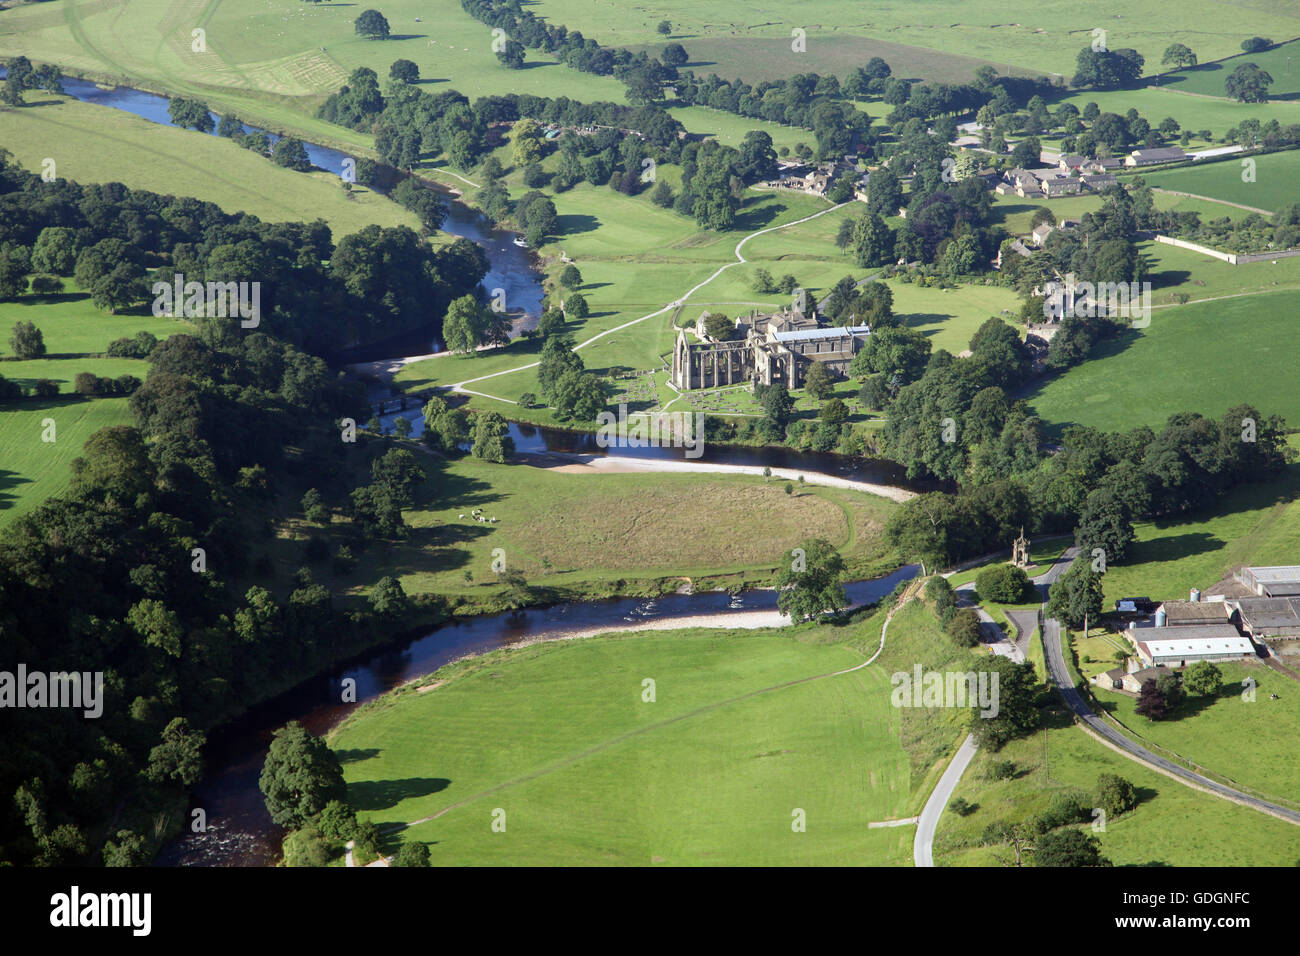 aerial view of Bolton Abbey in Wharfedale near Skipton, sometimes know as Bolton Priory, UK - Stock Image